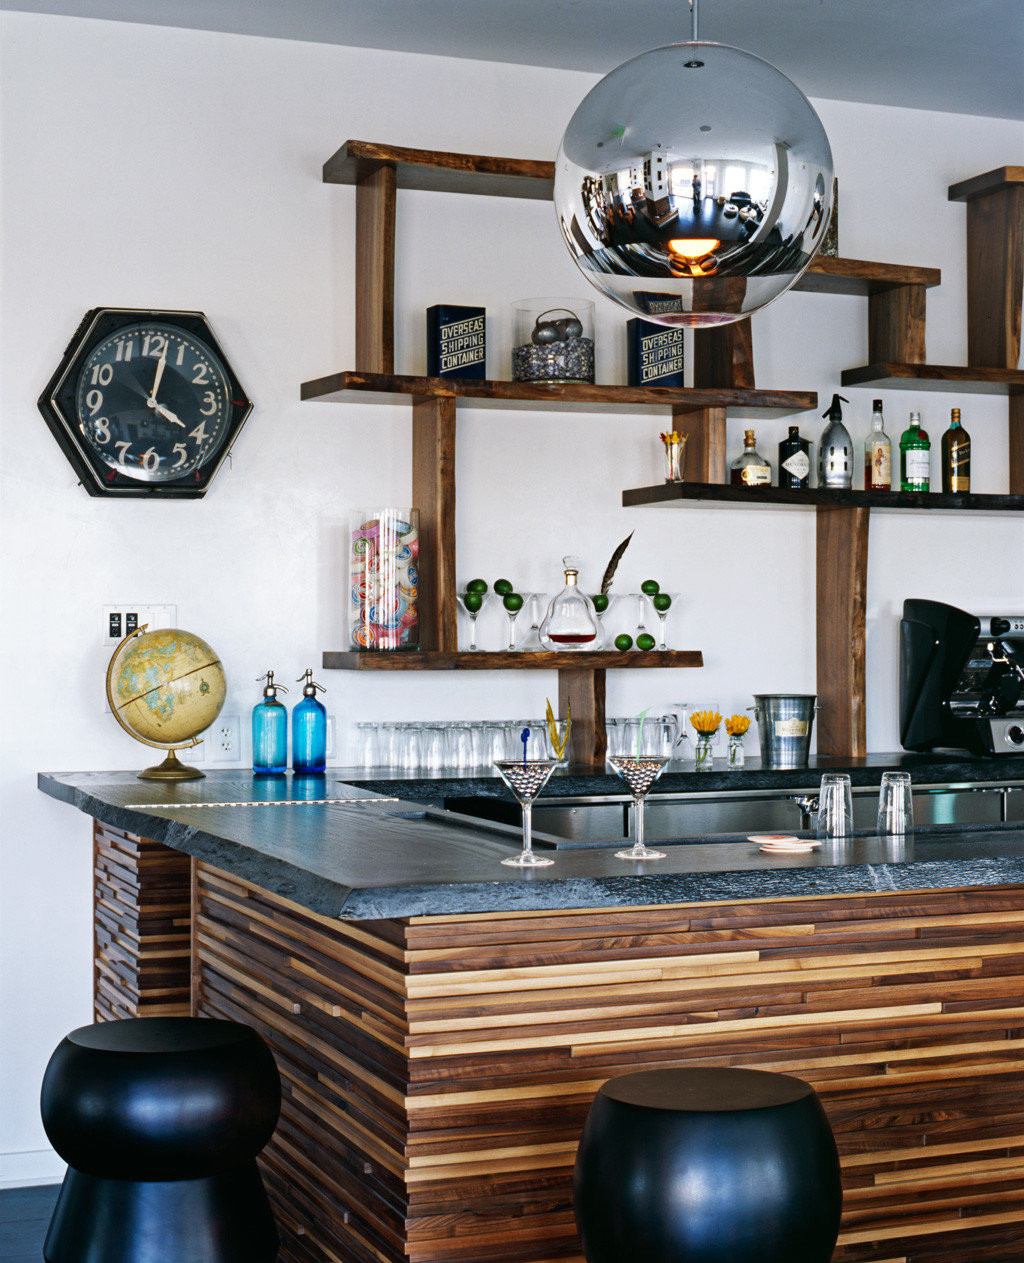 Bar Beach Boutique Drink Hip Party living room home hardwood wooden lighting shelf cabinetry Kitchen